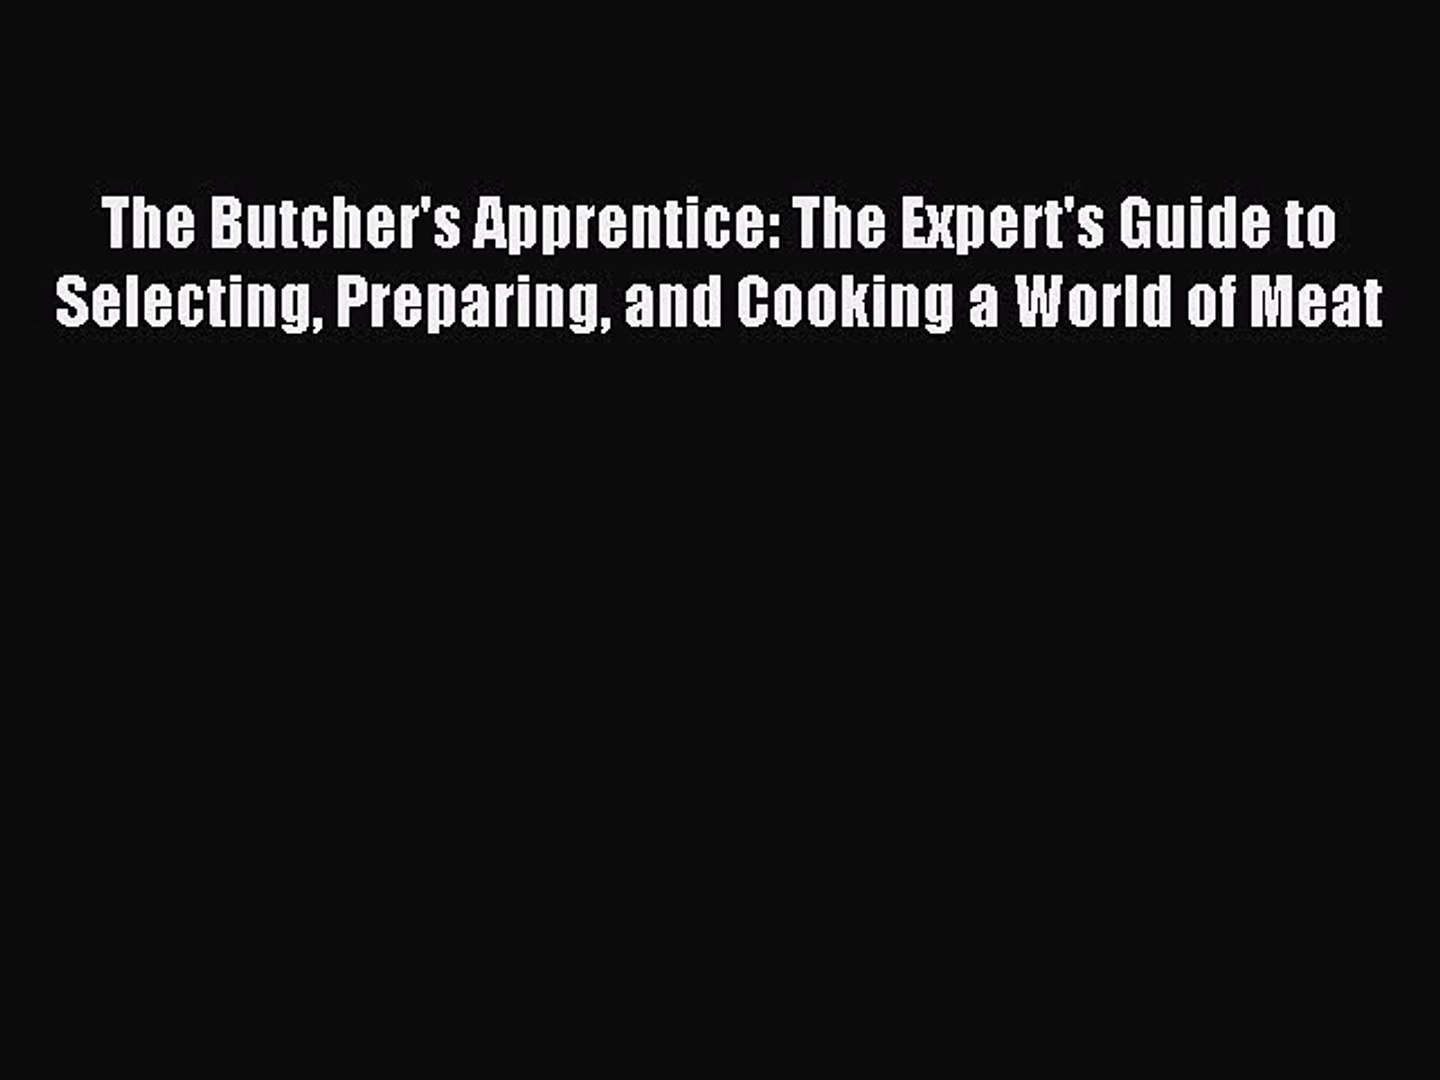 The Butchers Apprentice: The Experts Guide to Selecting, Preparing, and Cooking a World of Meat